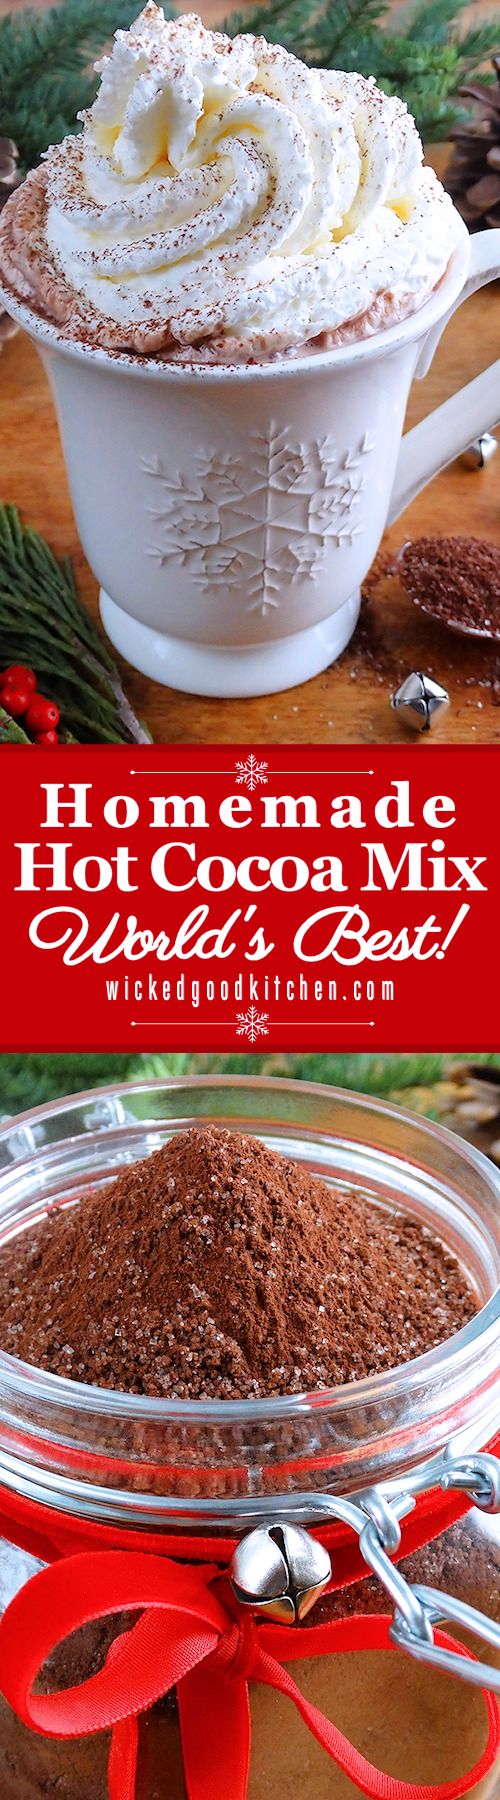 Making hot chocolate for a crowd - Homemade Hot Cocoa Mix World S Best